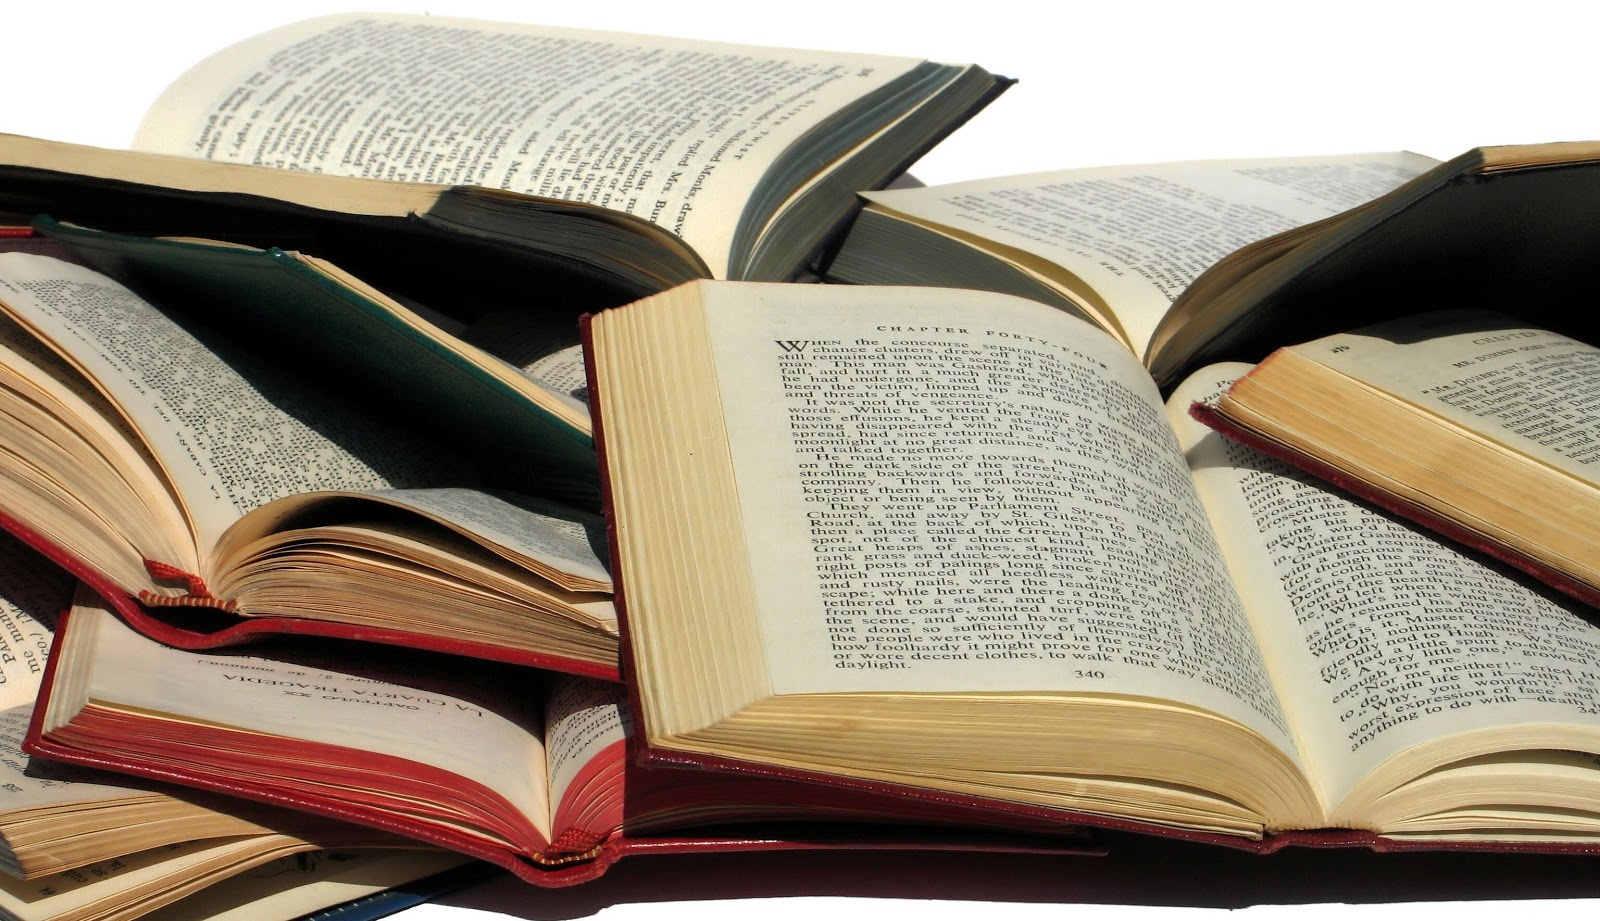 know we buy all sorts of books, from novels to textbooks we buy books ...